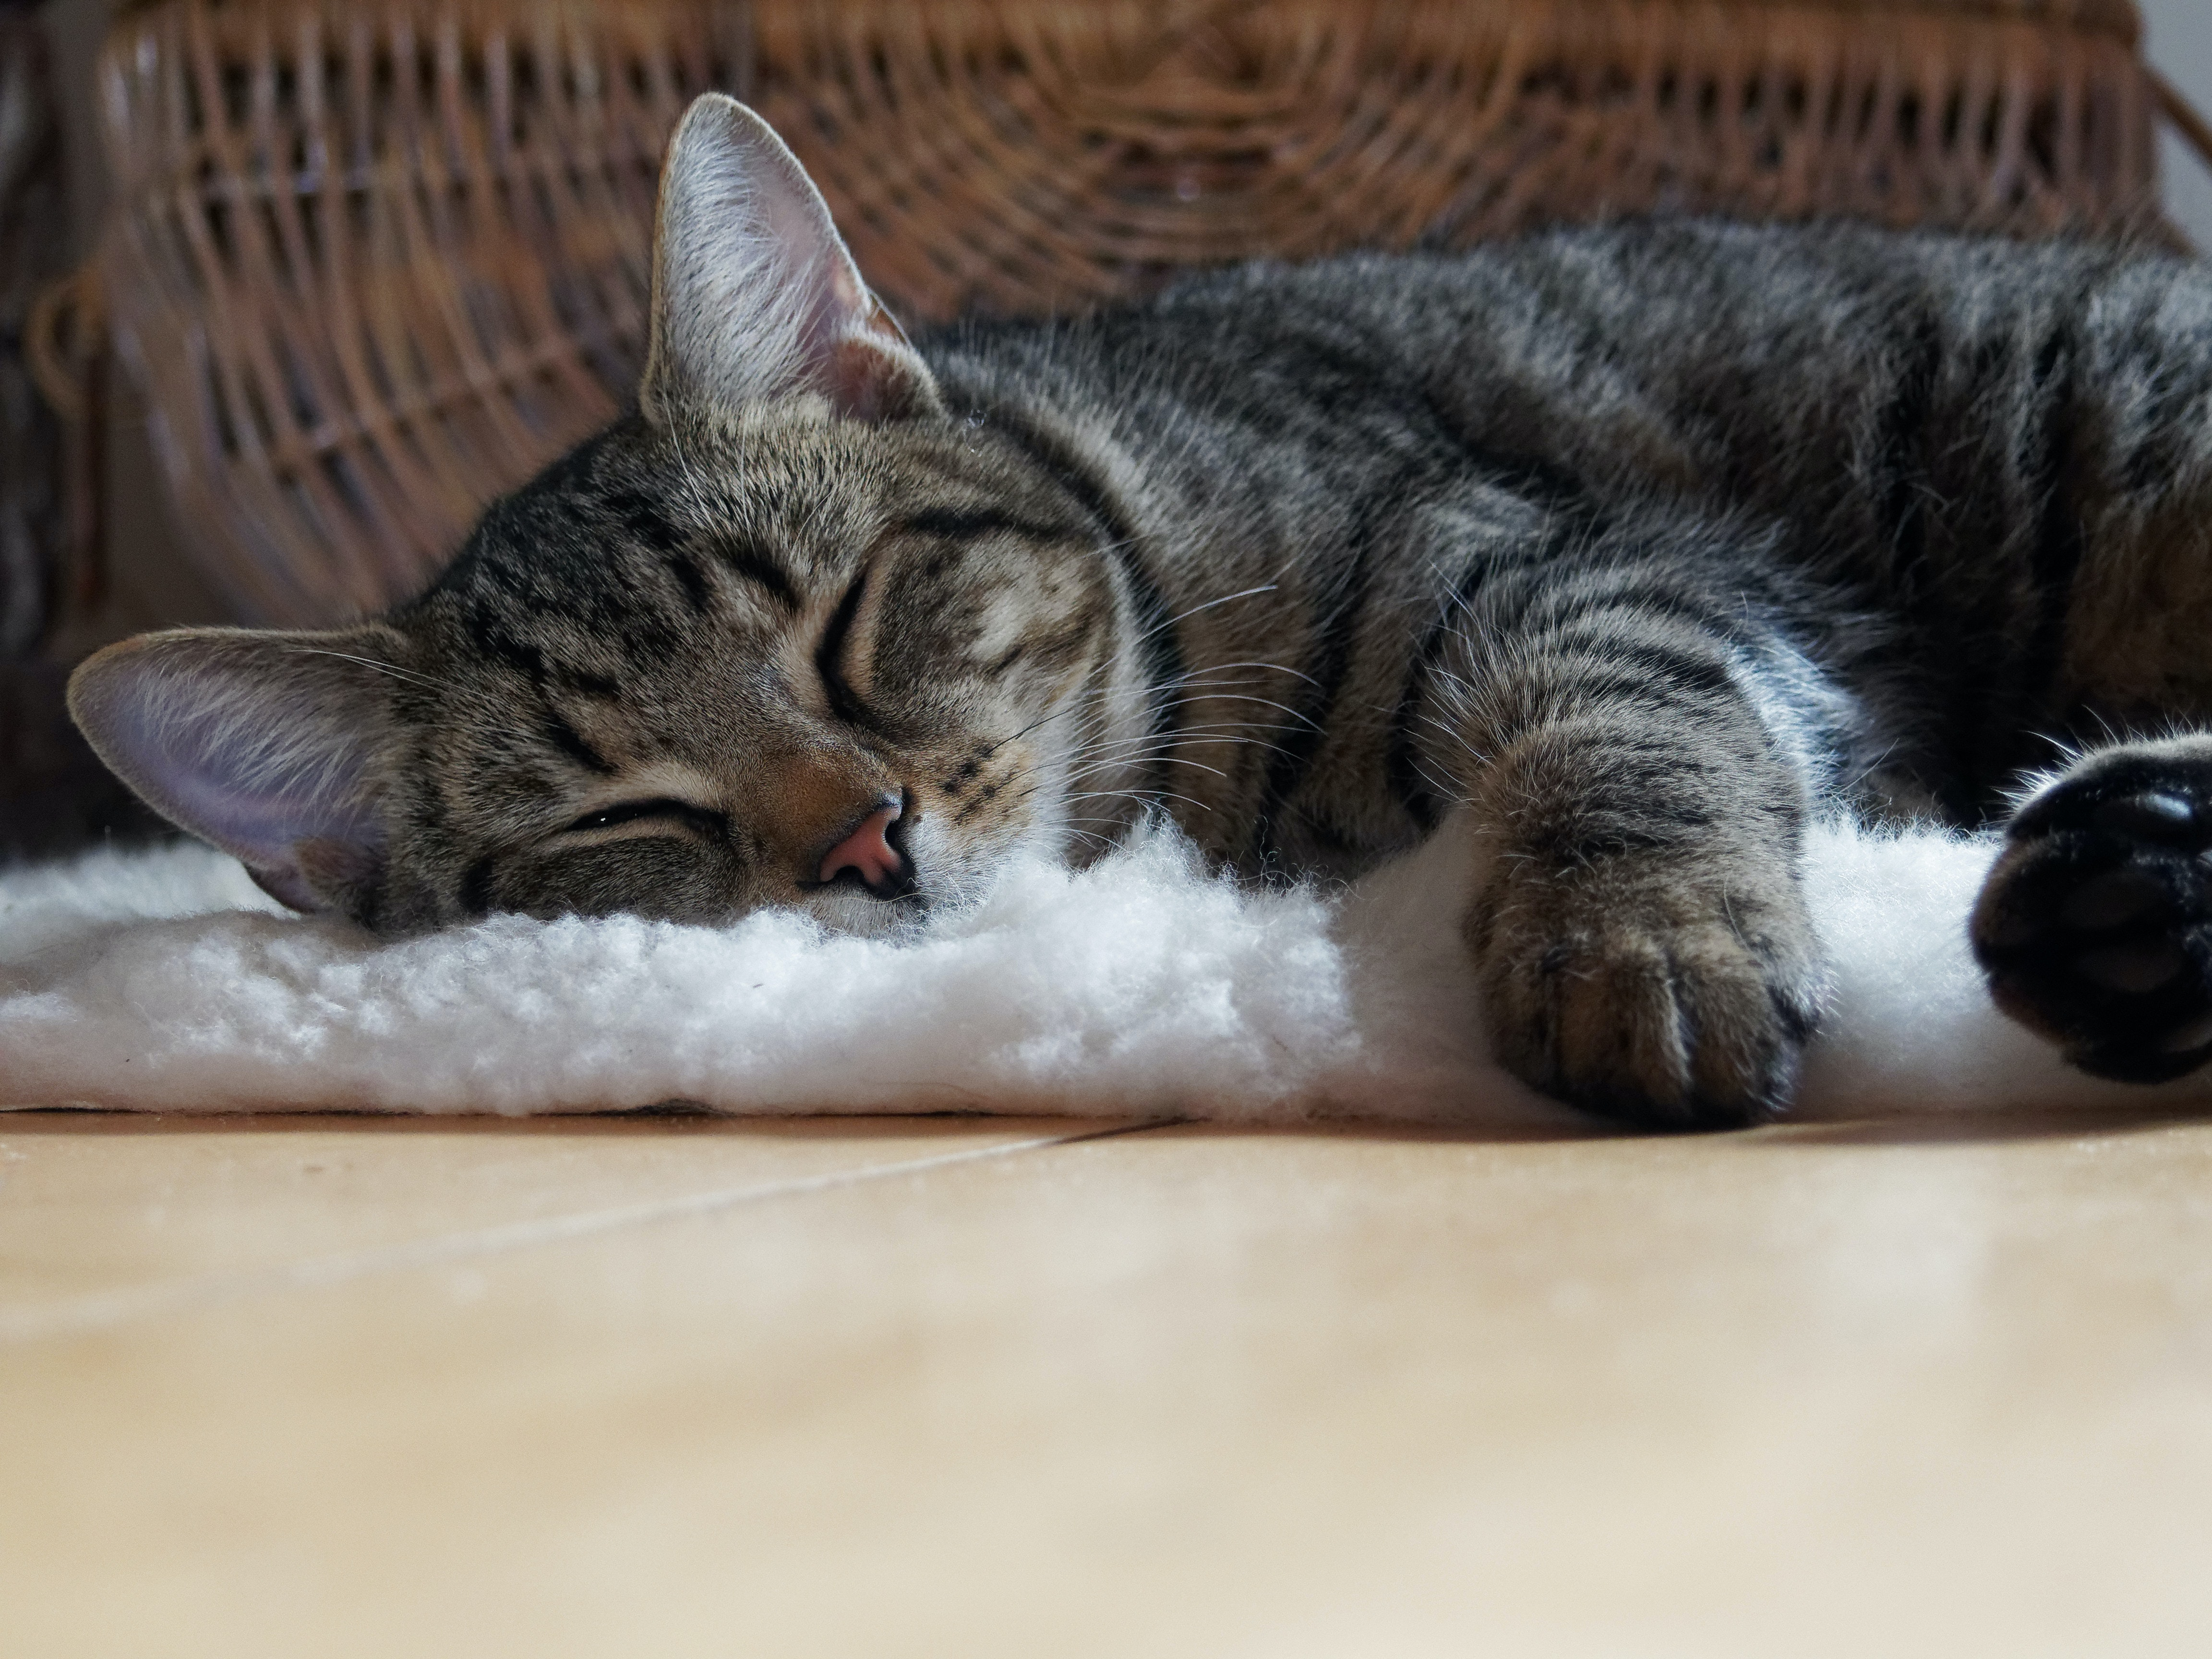 brown-tabby-cat-lying-on-shag-rug-720684